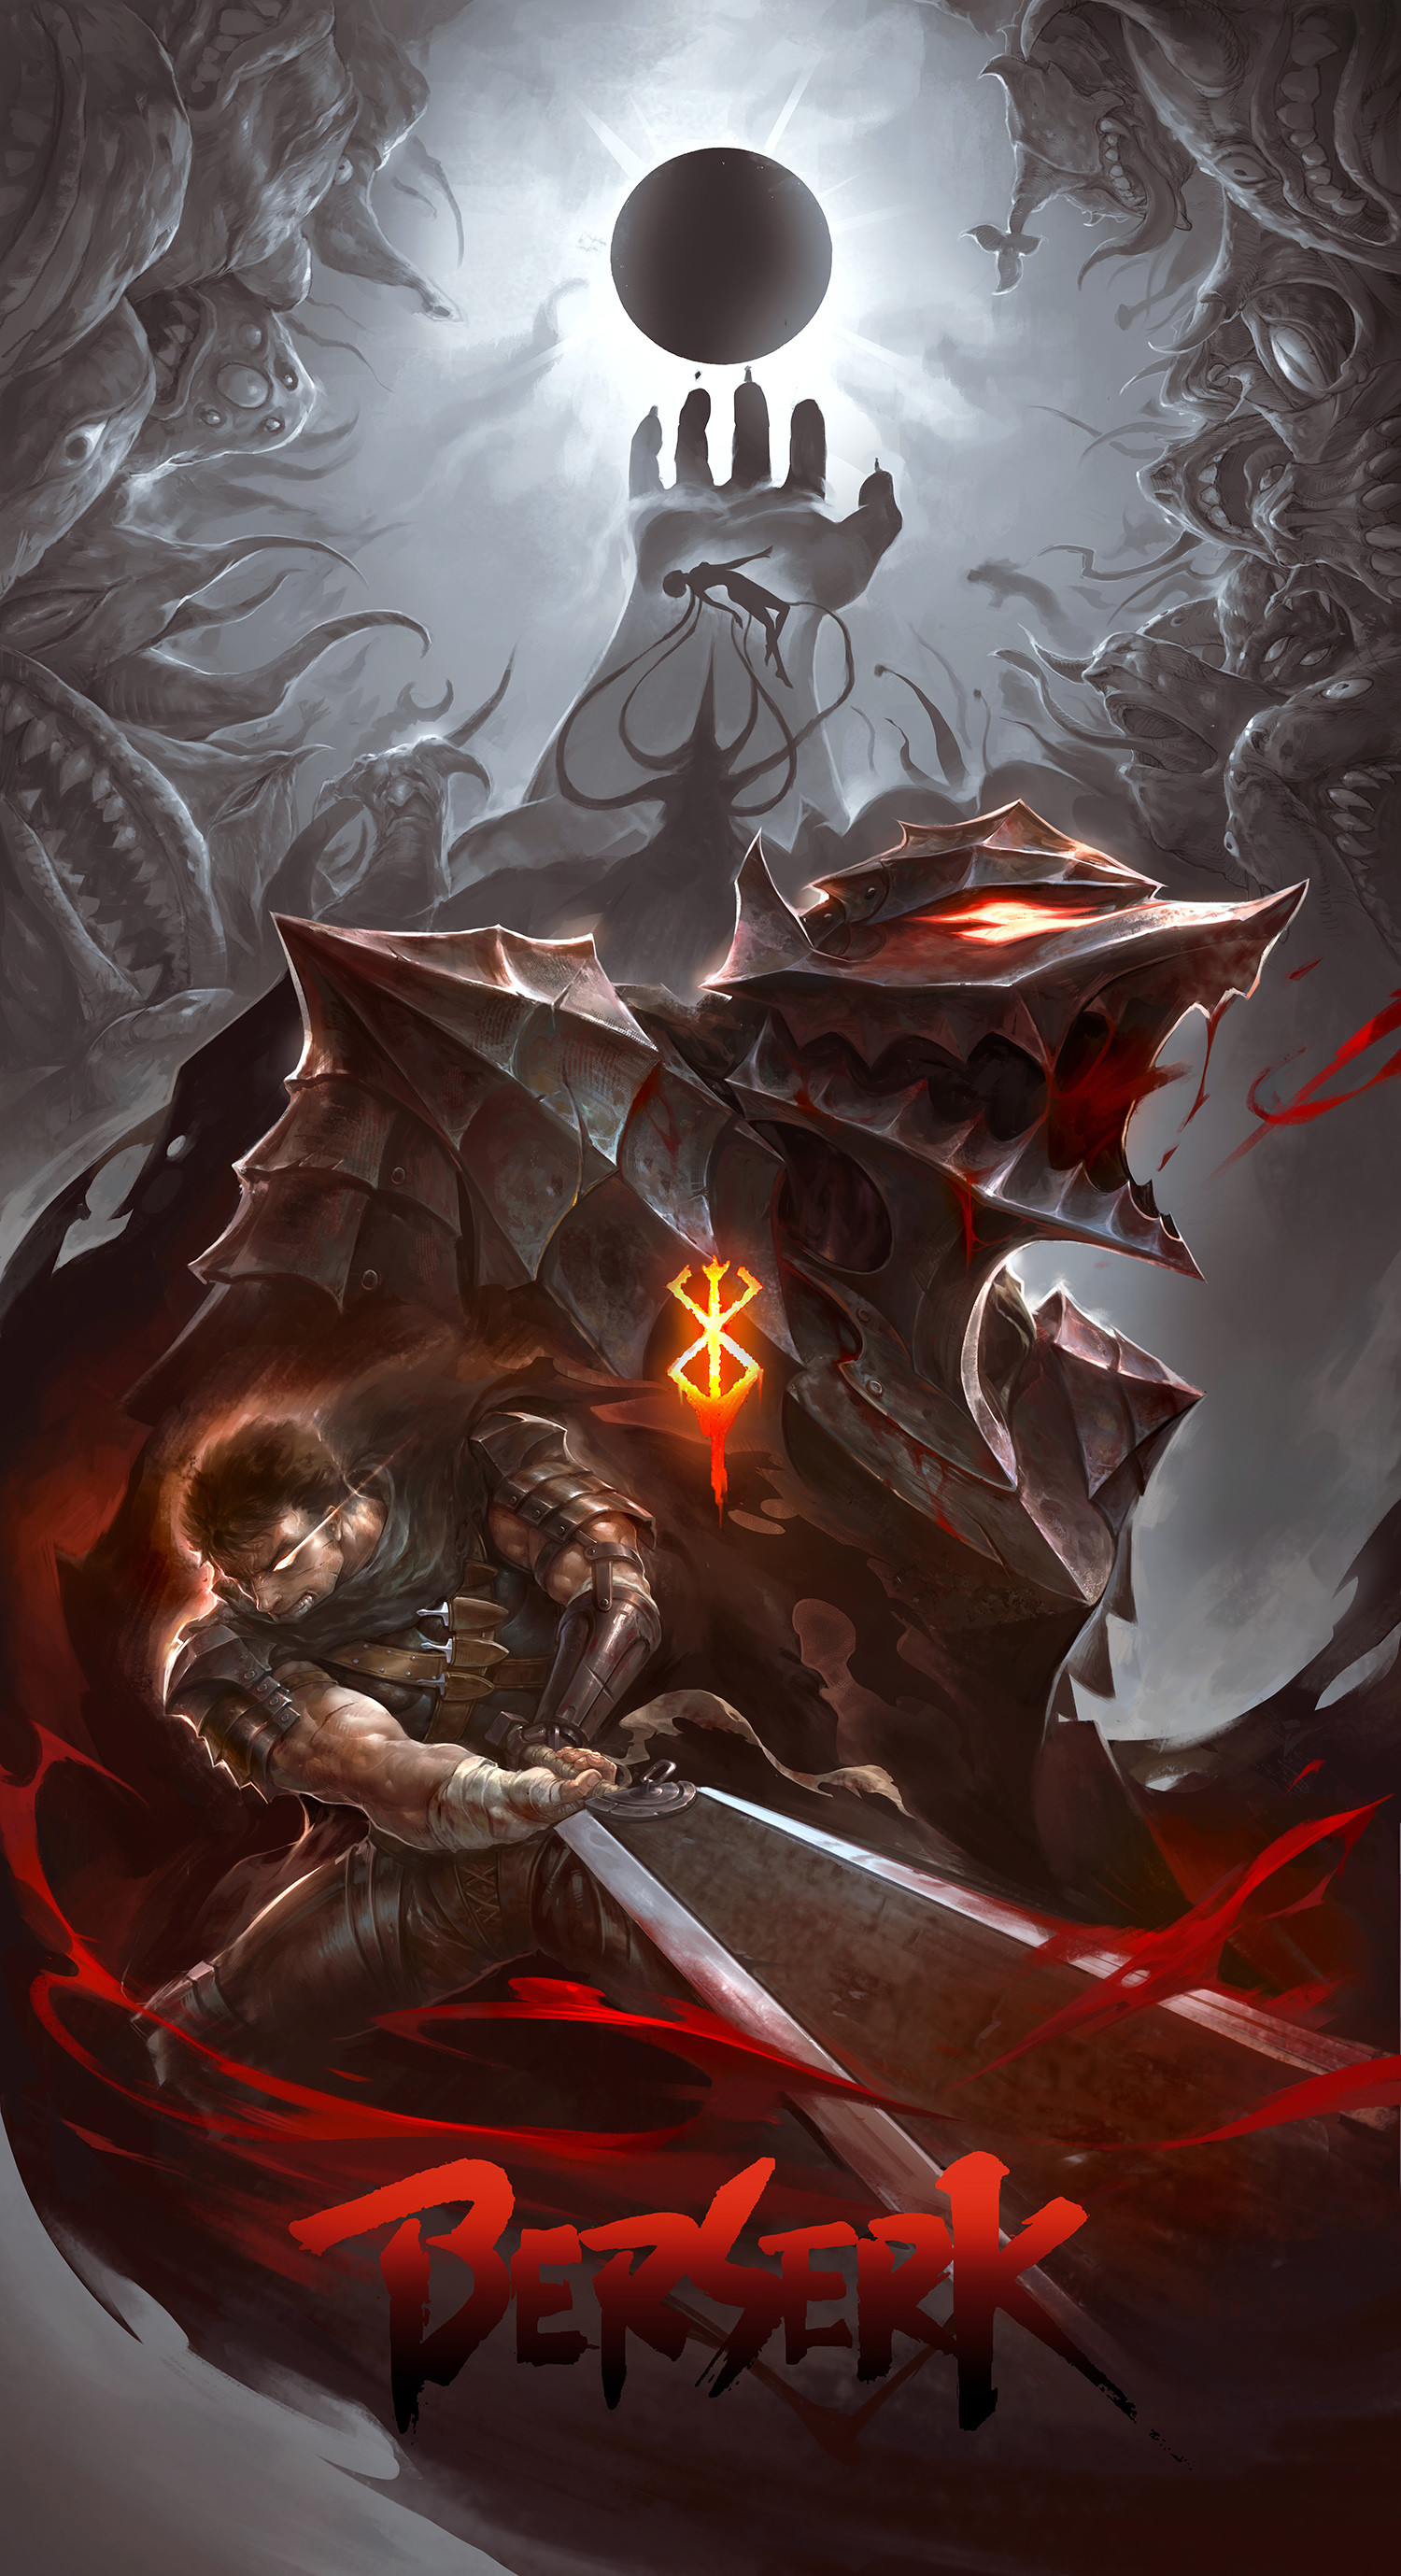 Anime 1500x2758 Berserk anime boys night eclipse  short hair 2D sword berserk armor open mouth fantasy armor black hair creature armor Guts Black Swordsman Casca vertical fan art blood anime